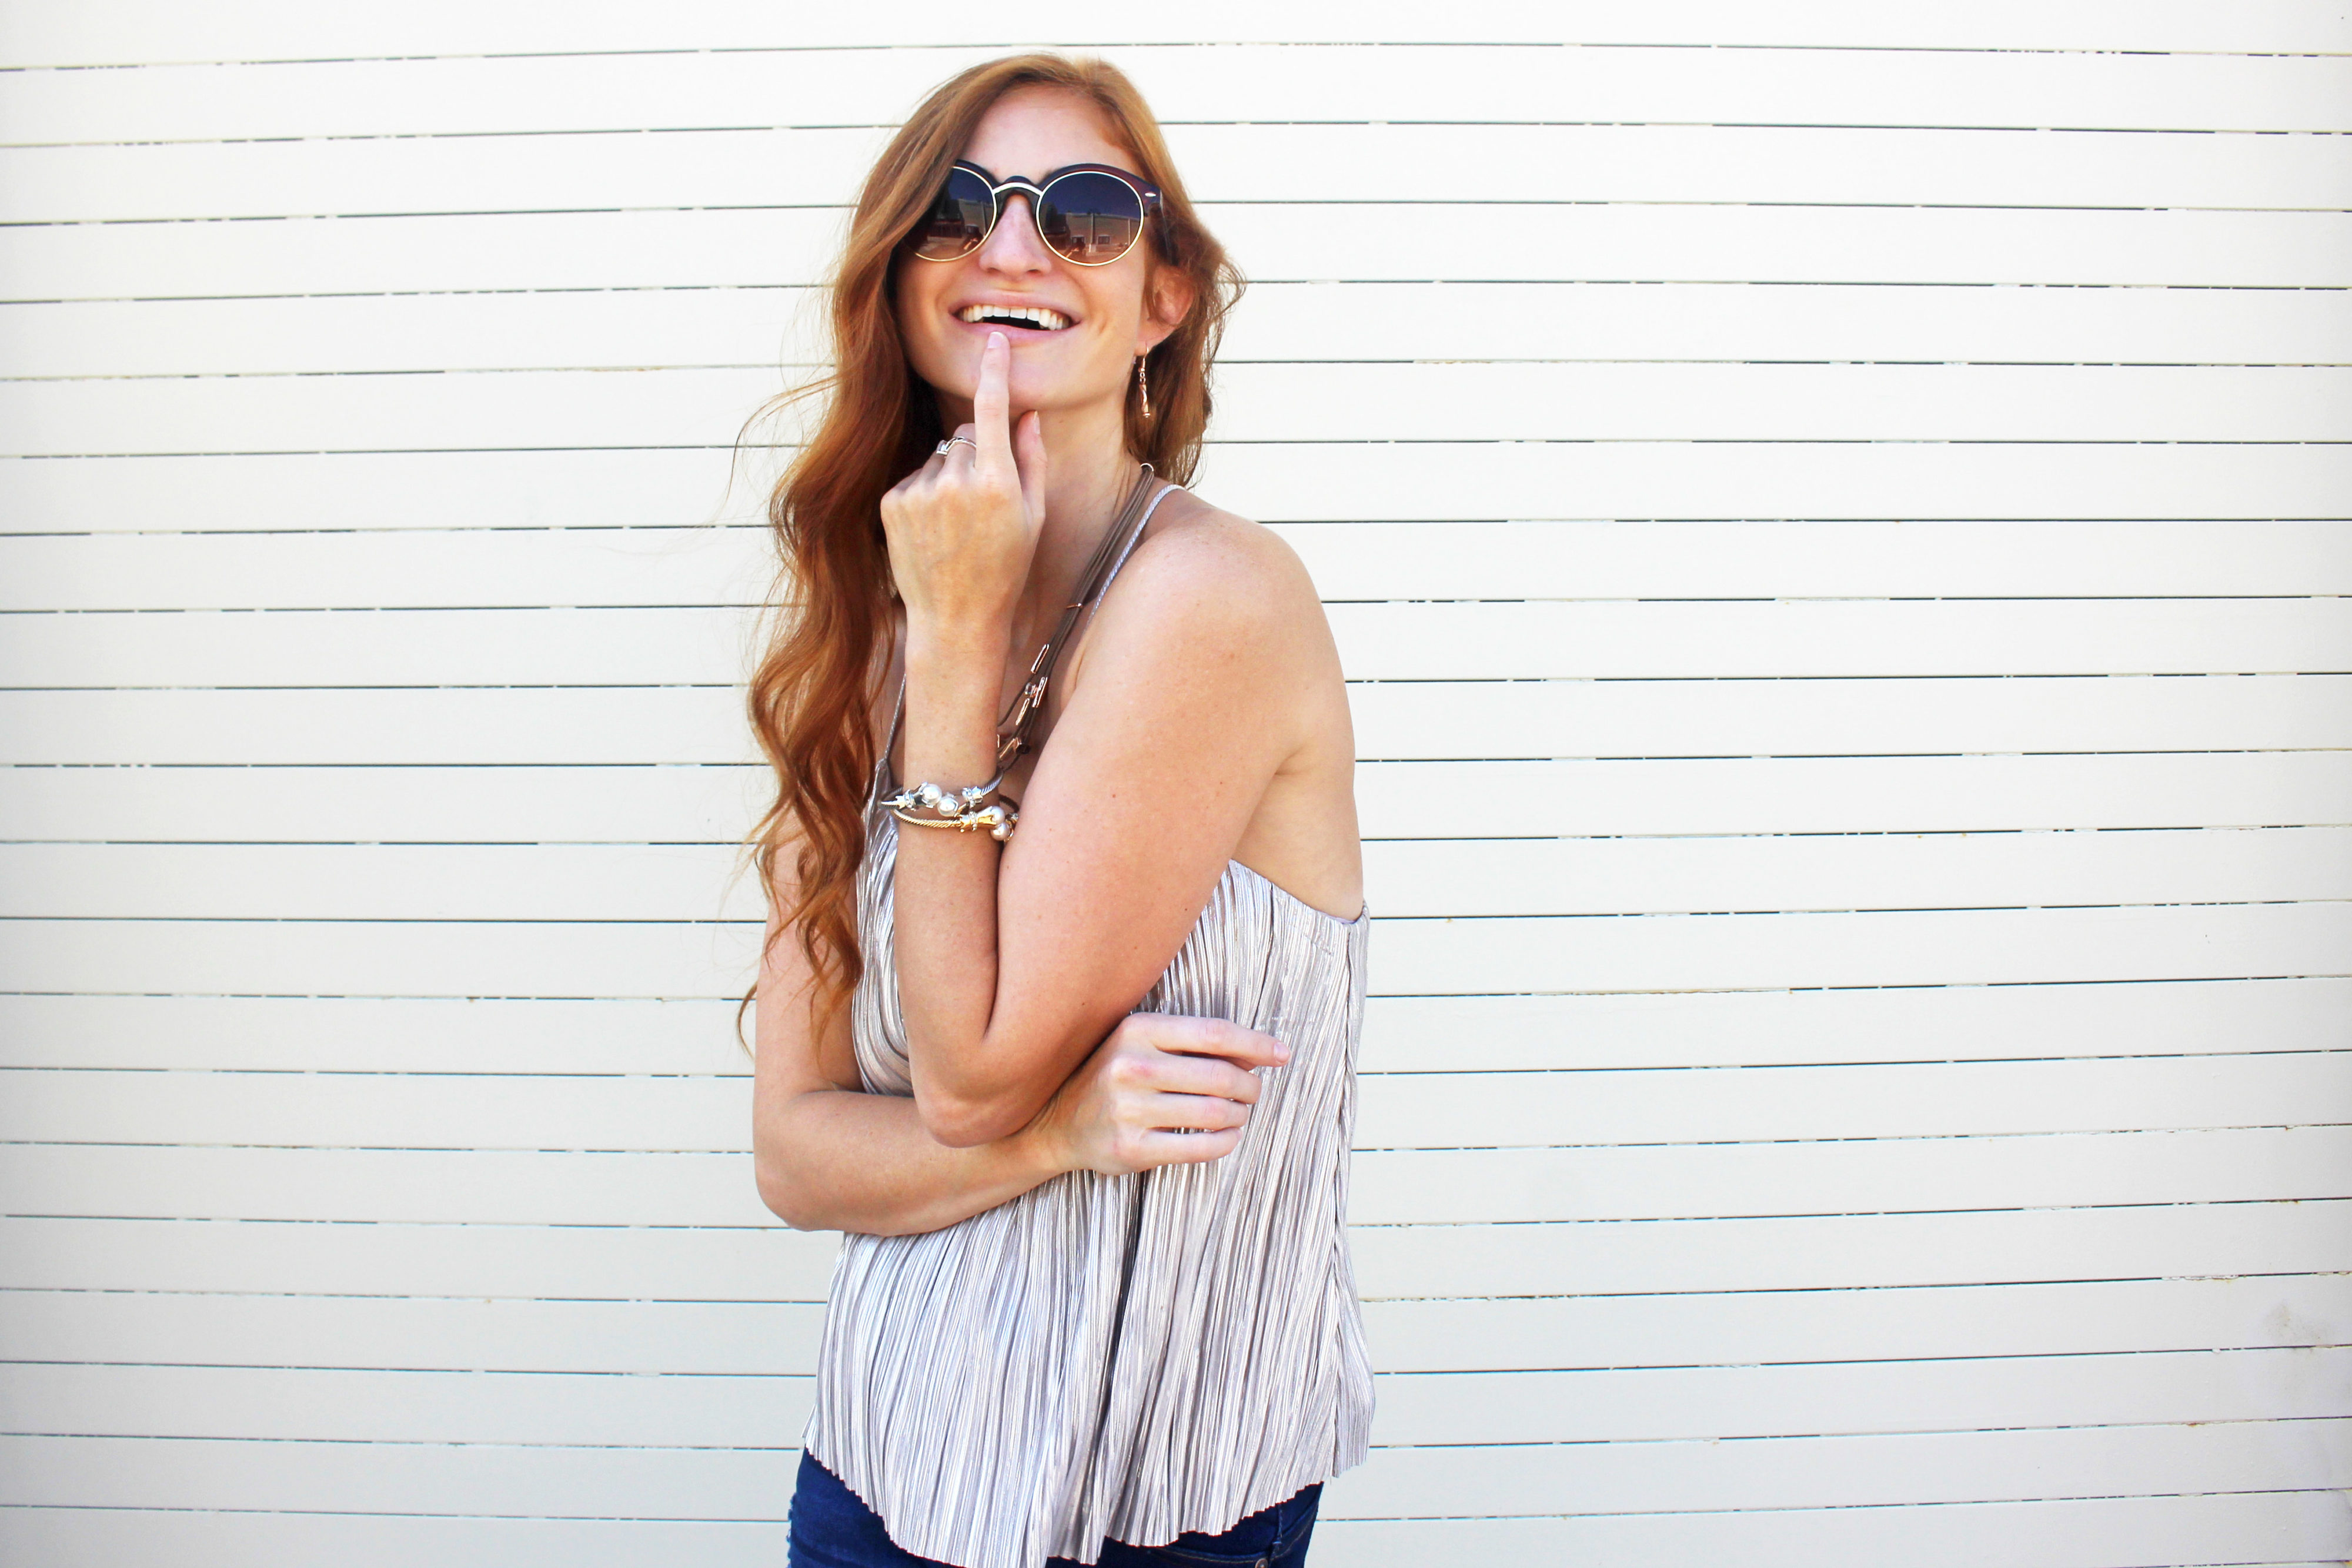 Redhead girl with finger on face smiling at camera